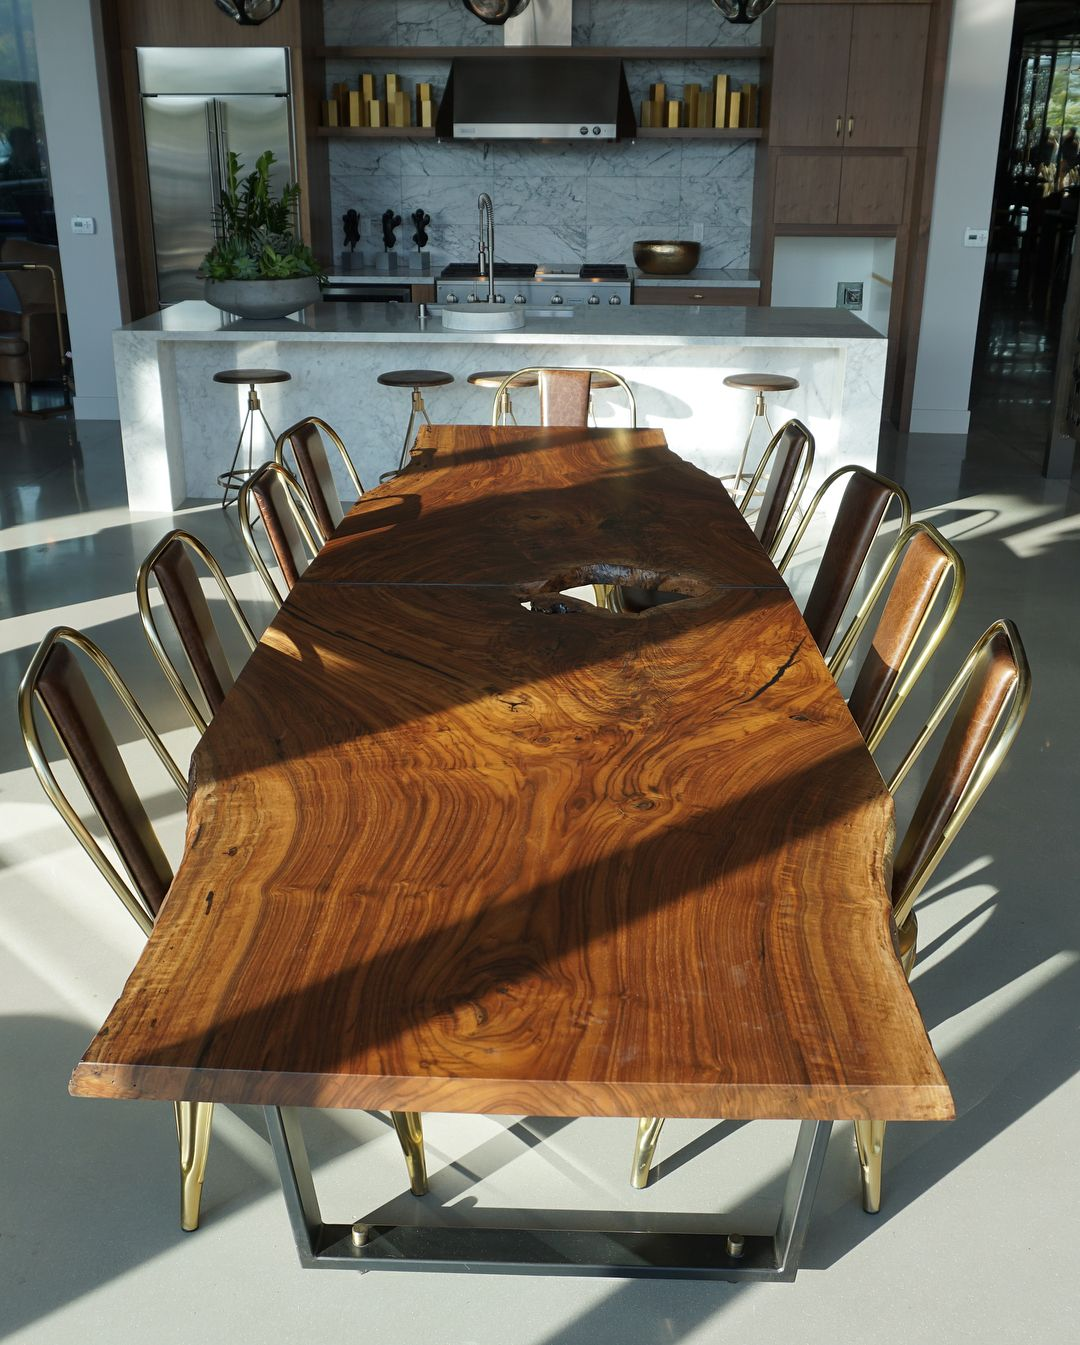 Live Edge Claro Walnut Dining Table For Alxliving Downtown San Diego